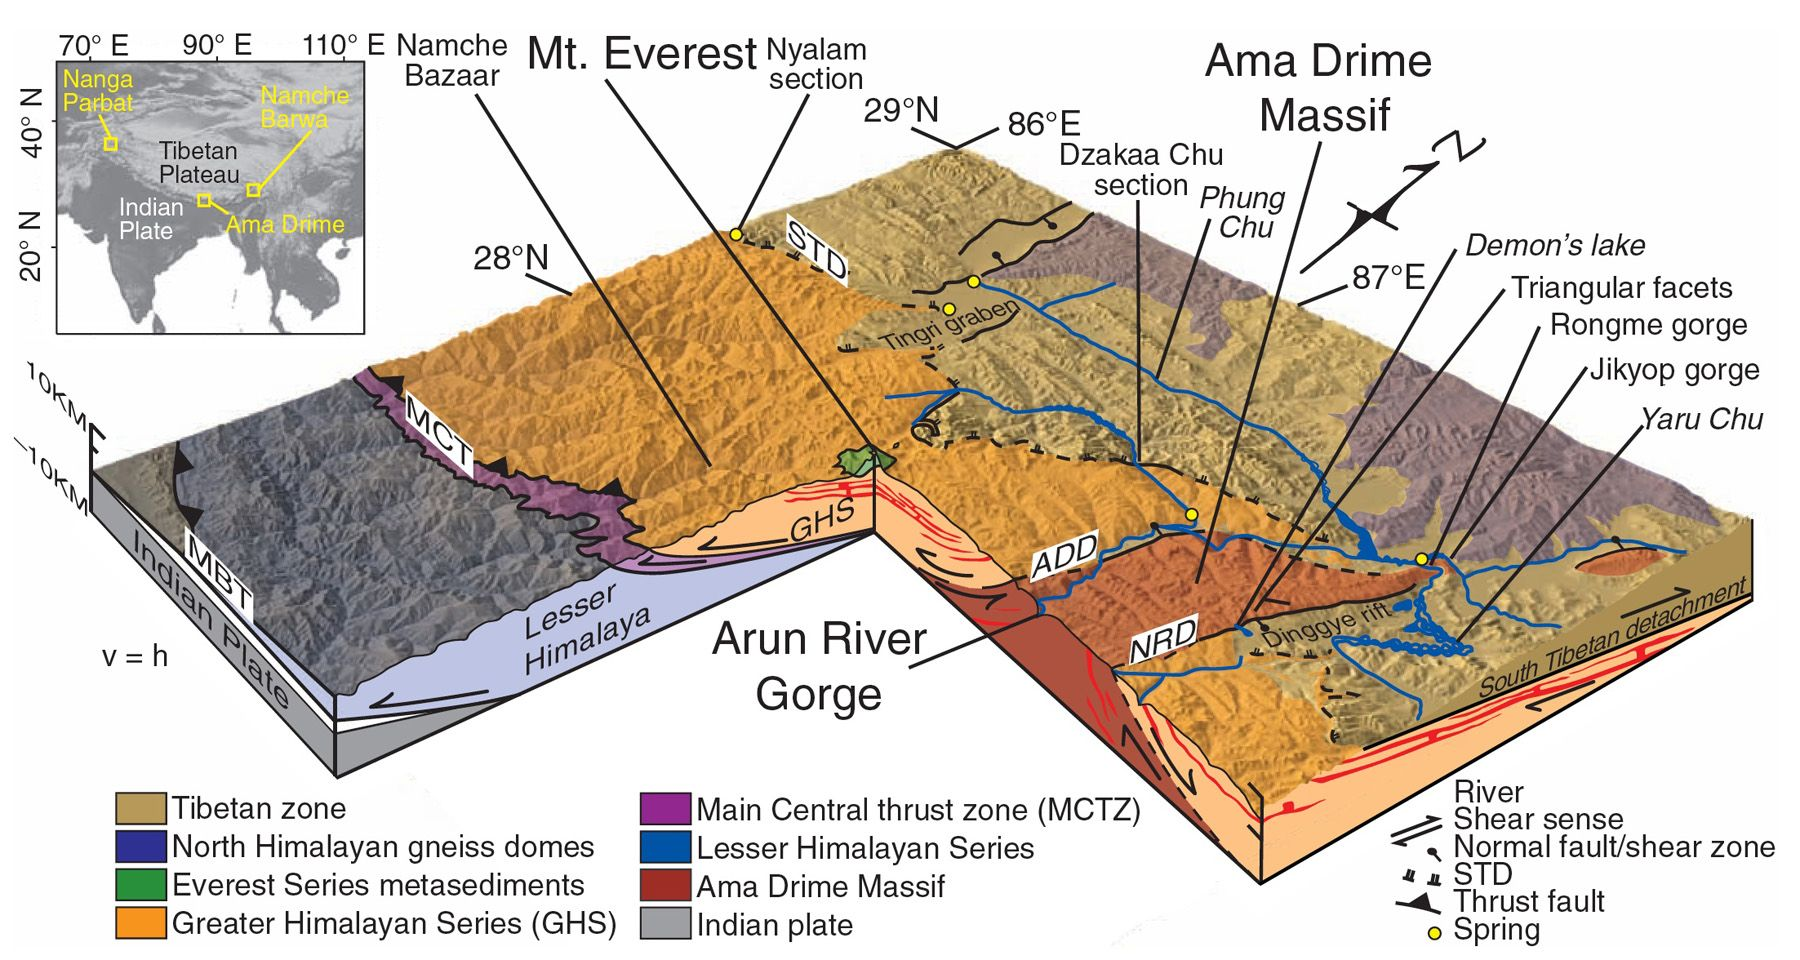 a simplified block diagram of the mount everest and ama drime Structural Geology Symbols block diagram geology Anticline Block Diagram Geologic Layers of Earth Diagrams Dip-Slip Fault Diagram